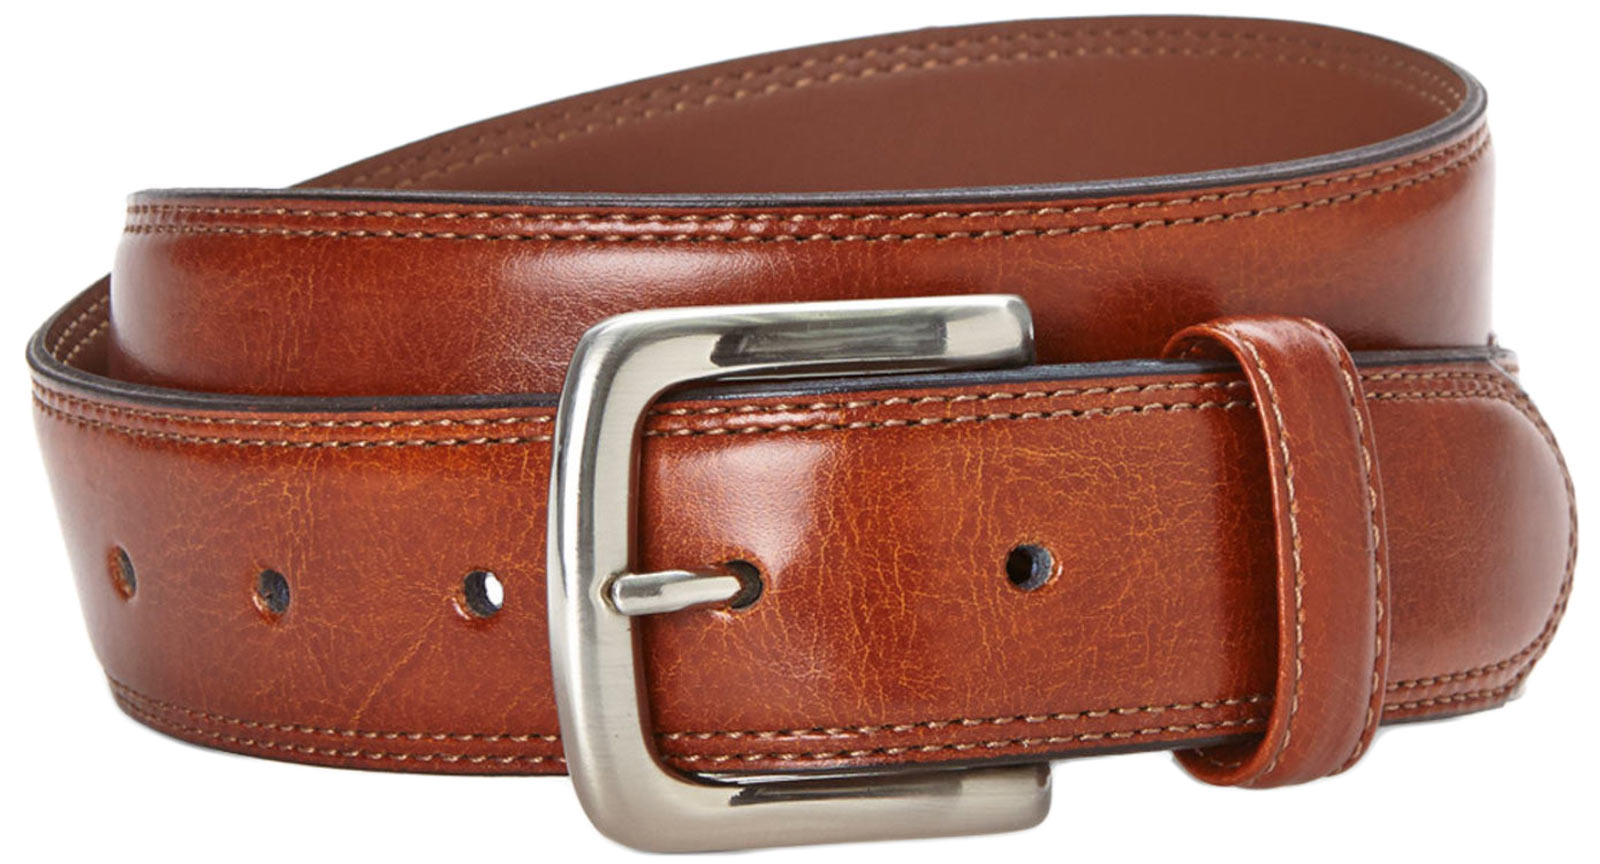 Bosca B03724 01 Men's Tan Leather Belt Metal Buckl